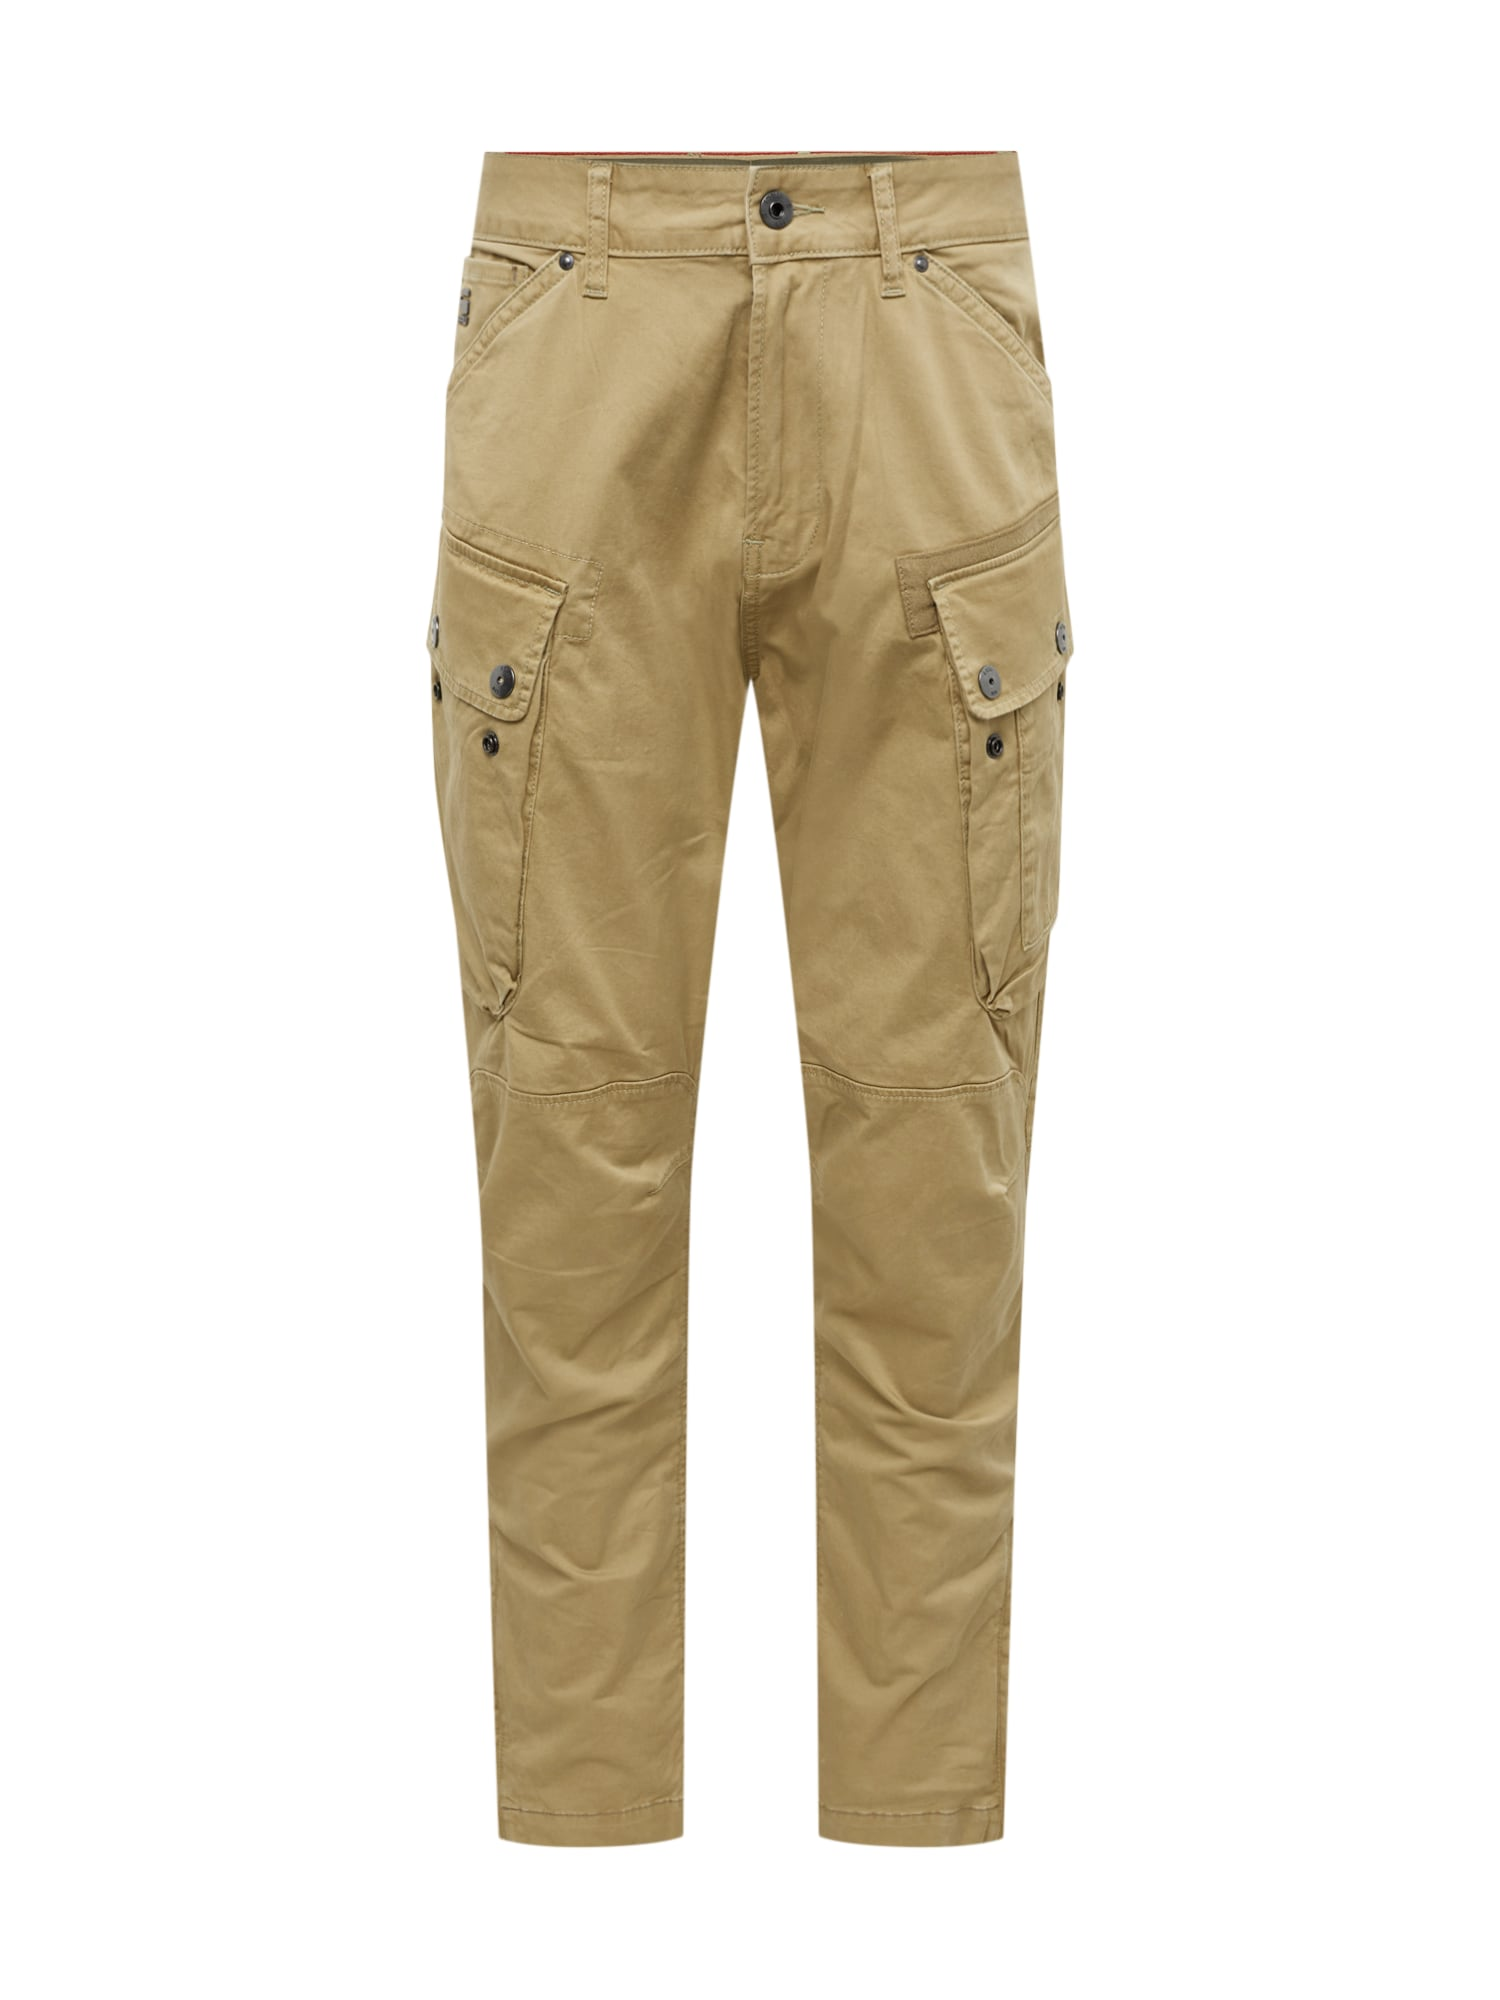 Kapsáče Dustor khaki G-STAR RAW